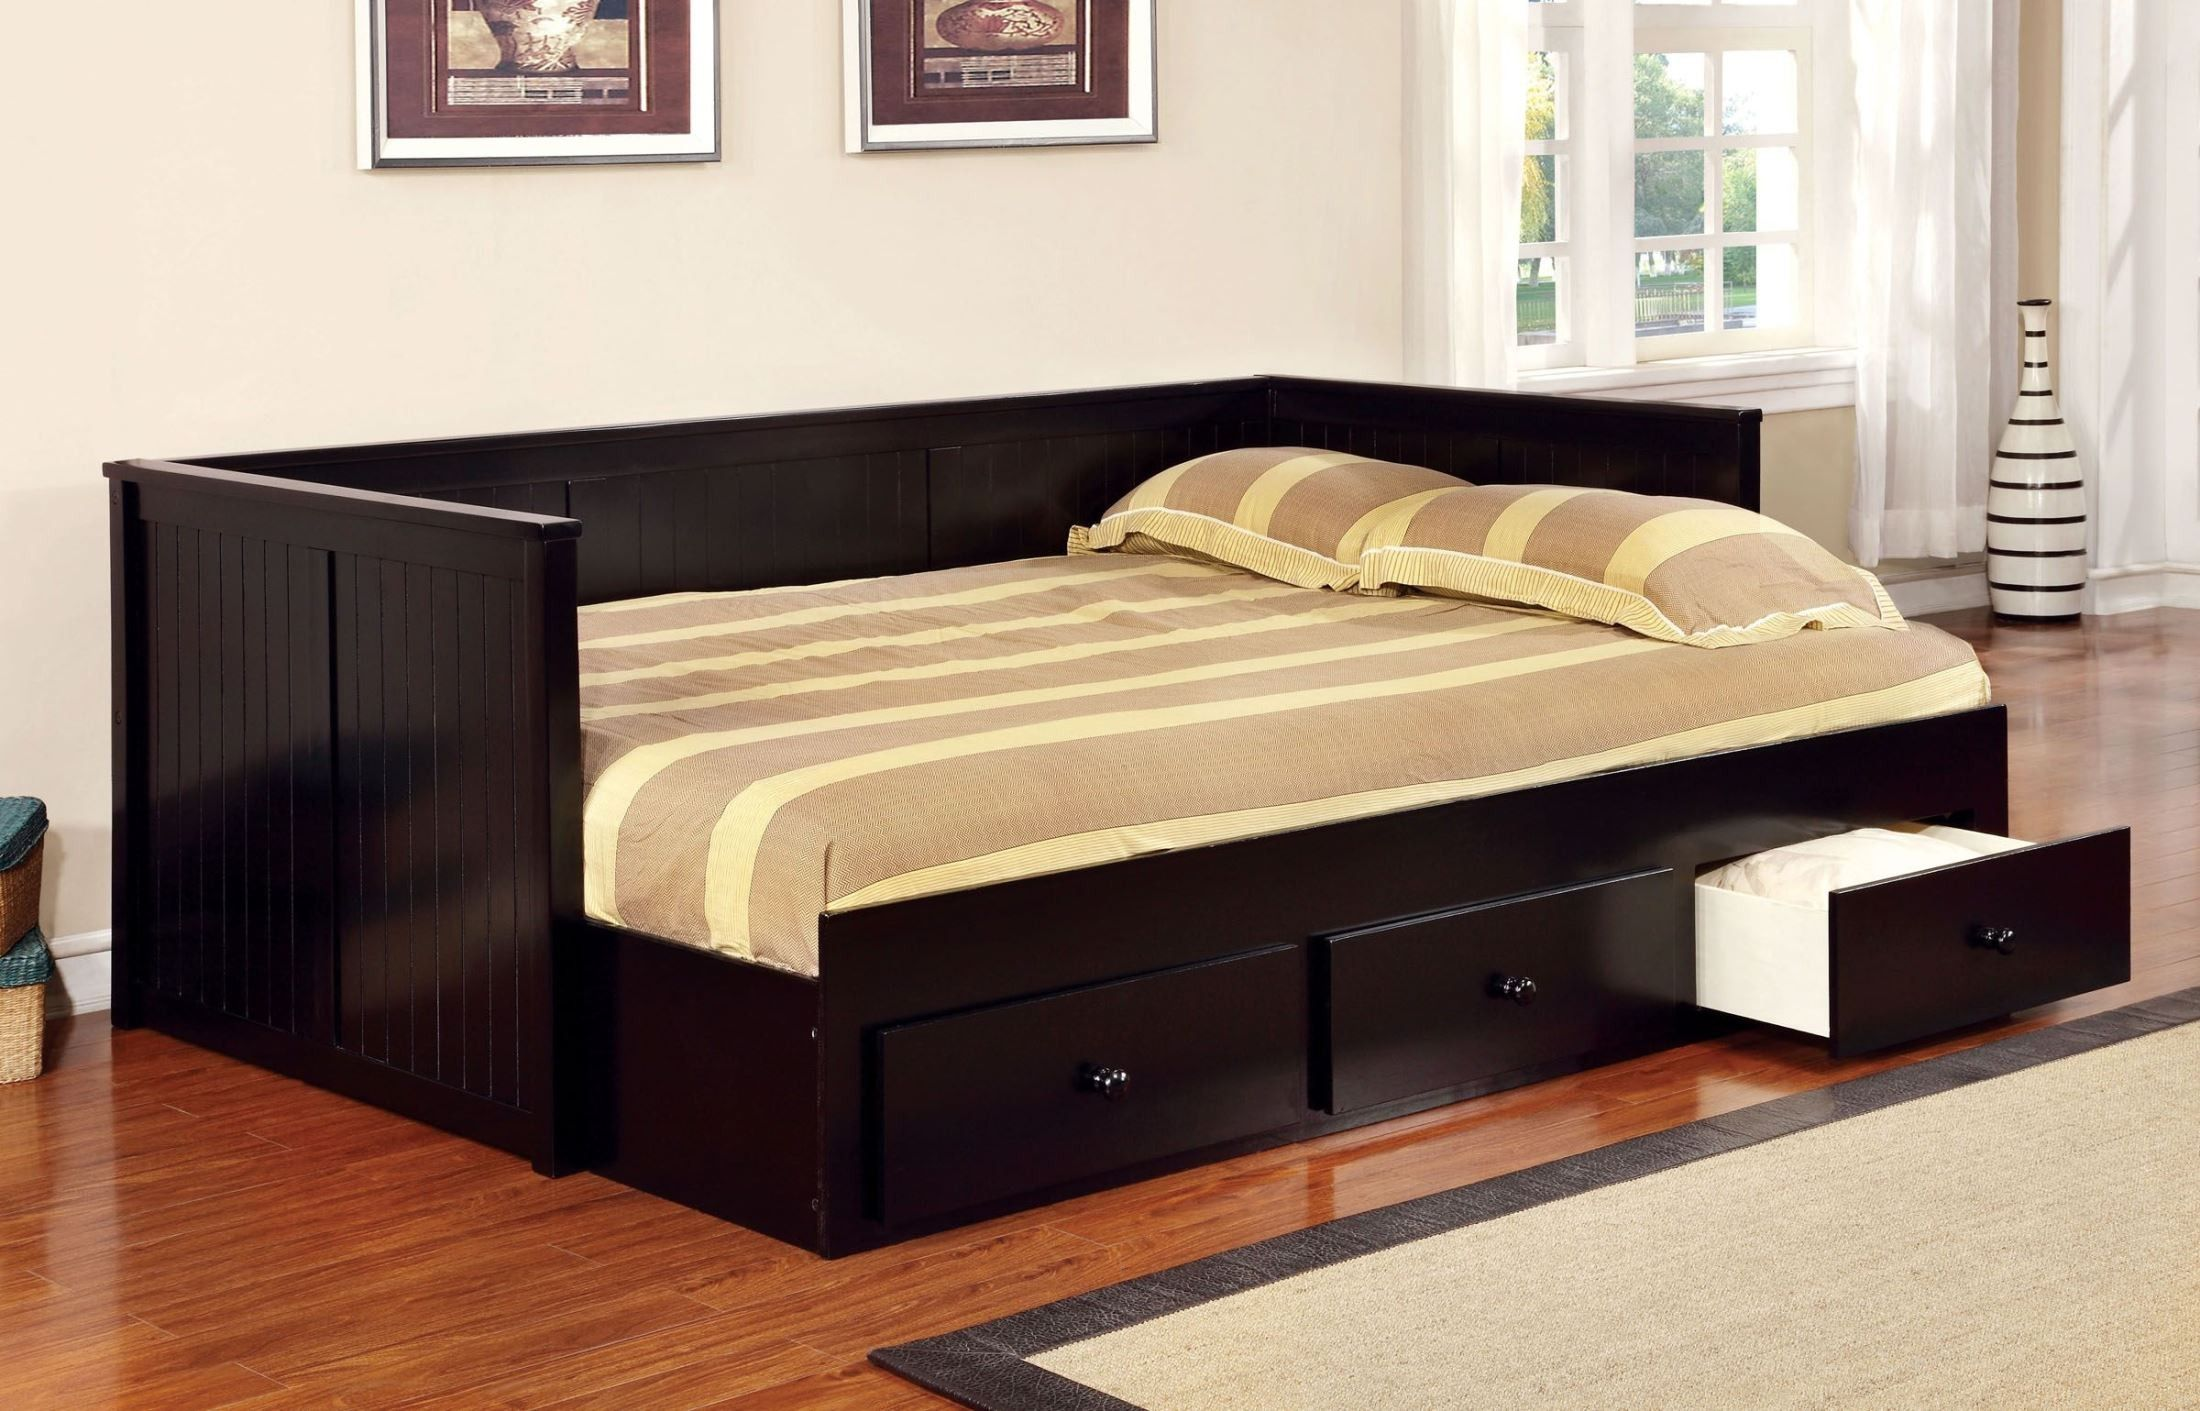 Wolford Black Full Daybed Daybed With Storage Daybed With Drawers Full Size Daybed Daybeds with mattress for sale